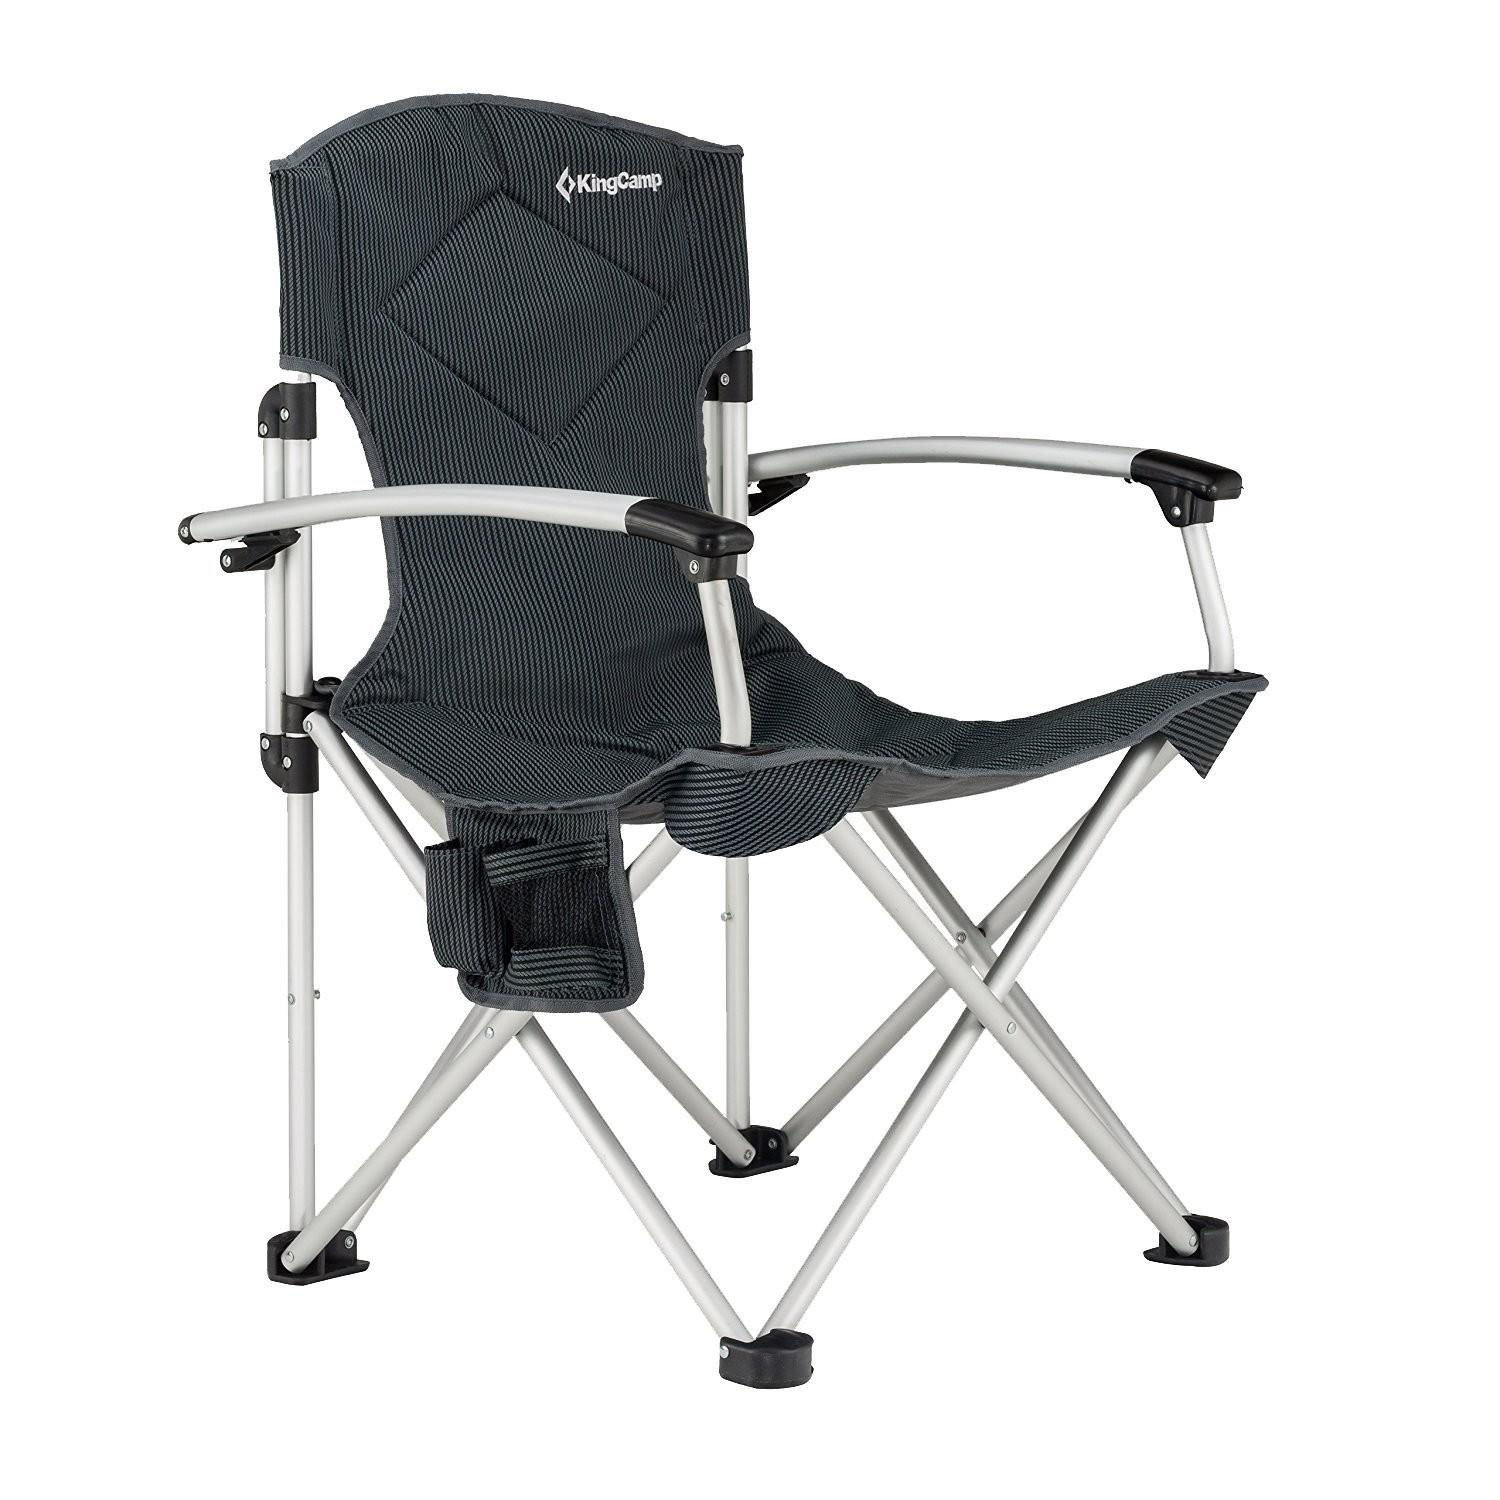 Kingcamp Camping Chair Foldable Oversize Portable Quad